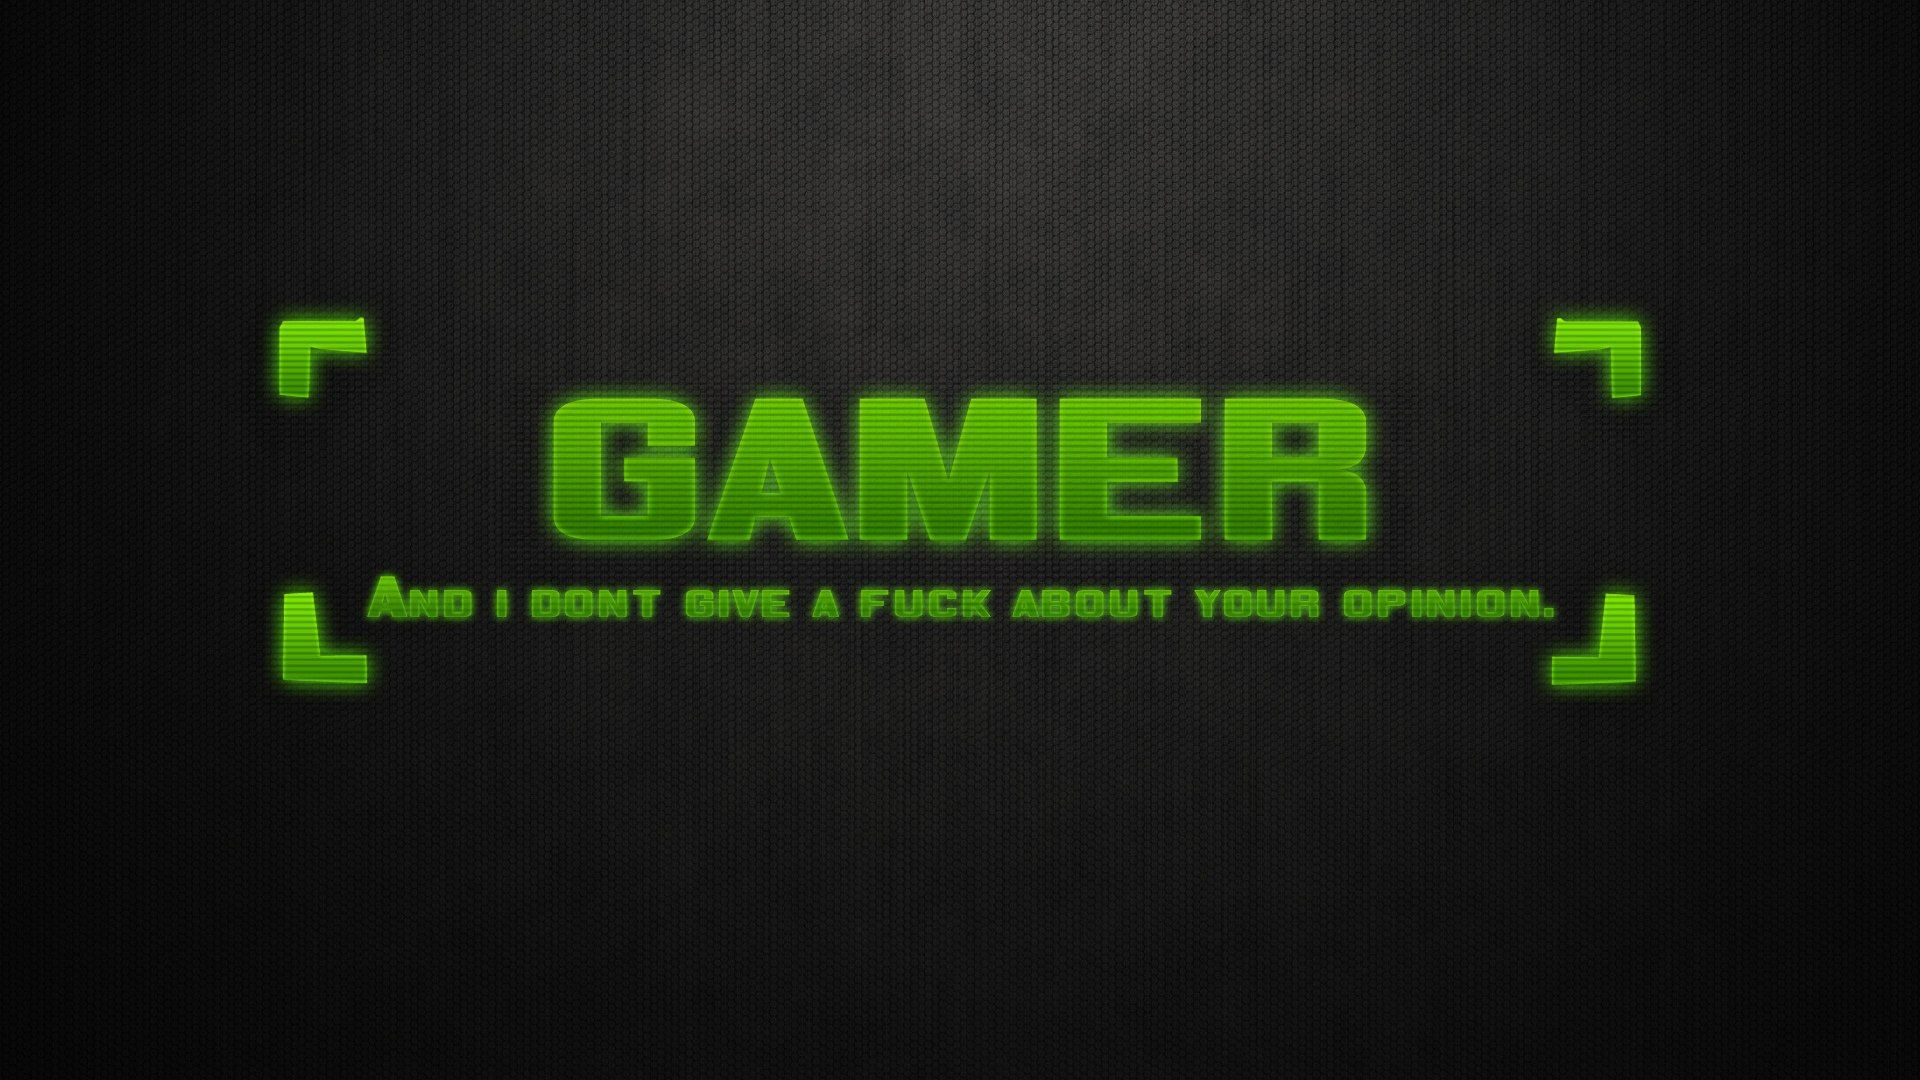 Cool Gamer Wallpapers 1920 1080 Cool Gamer Backgrounds 45